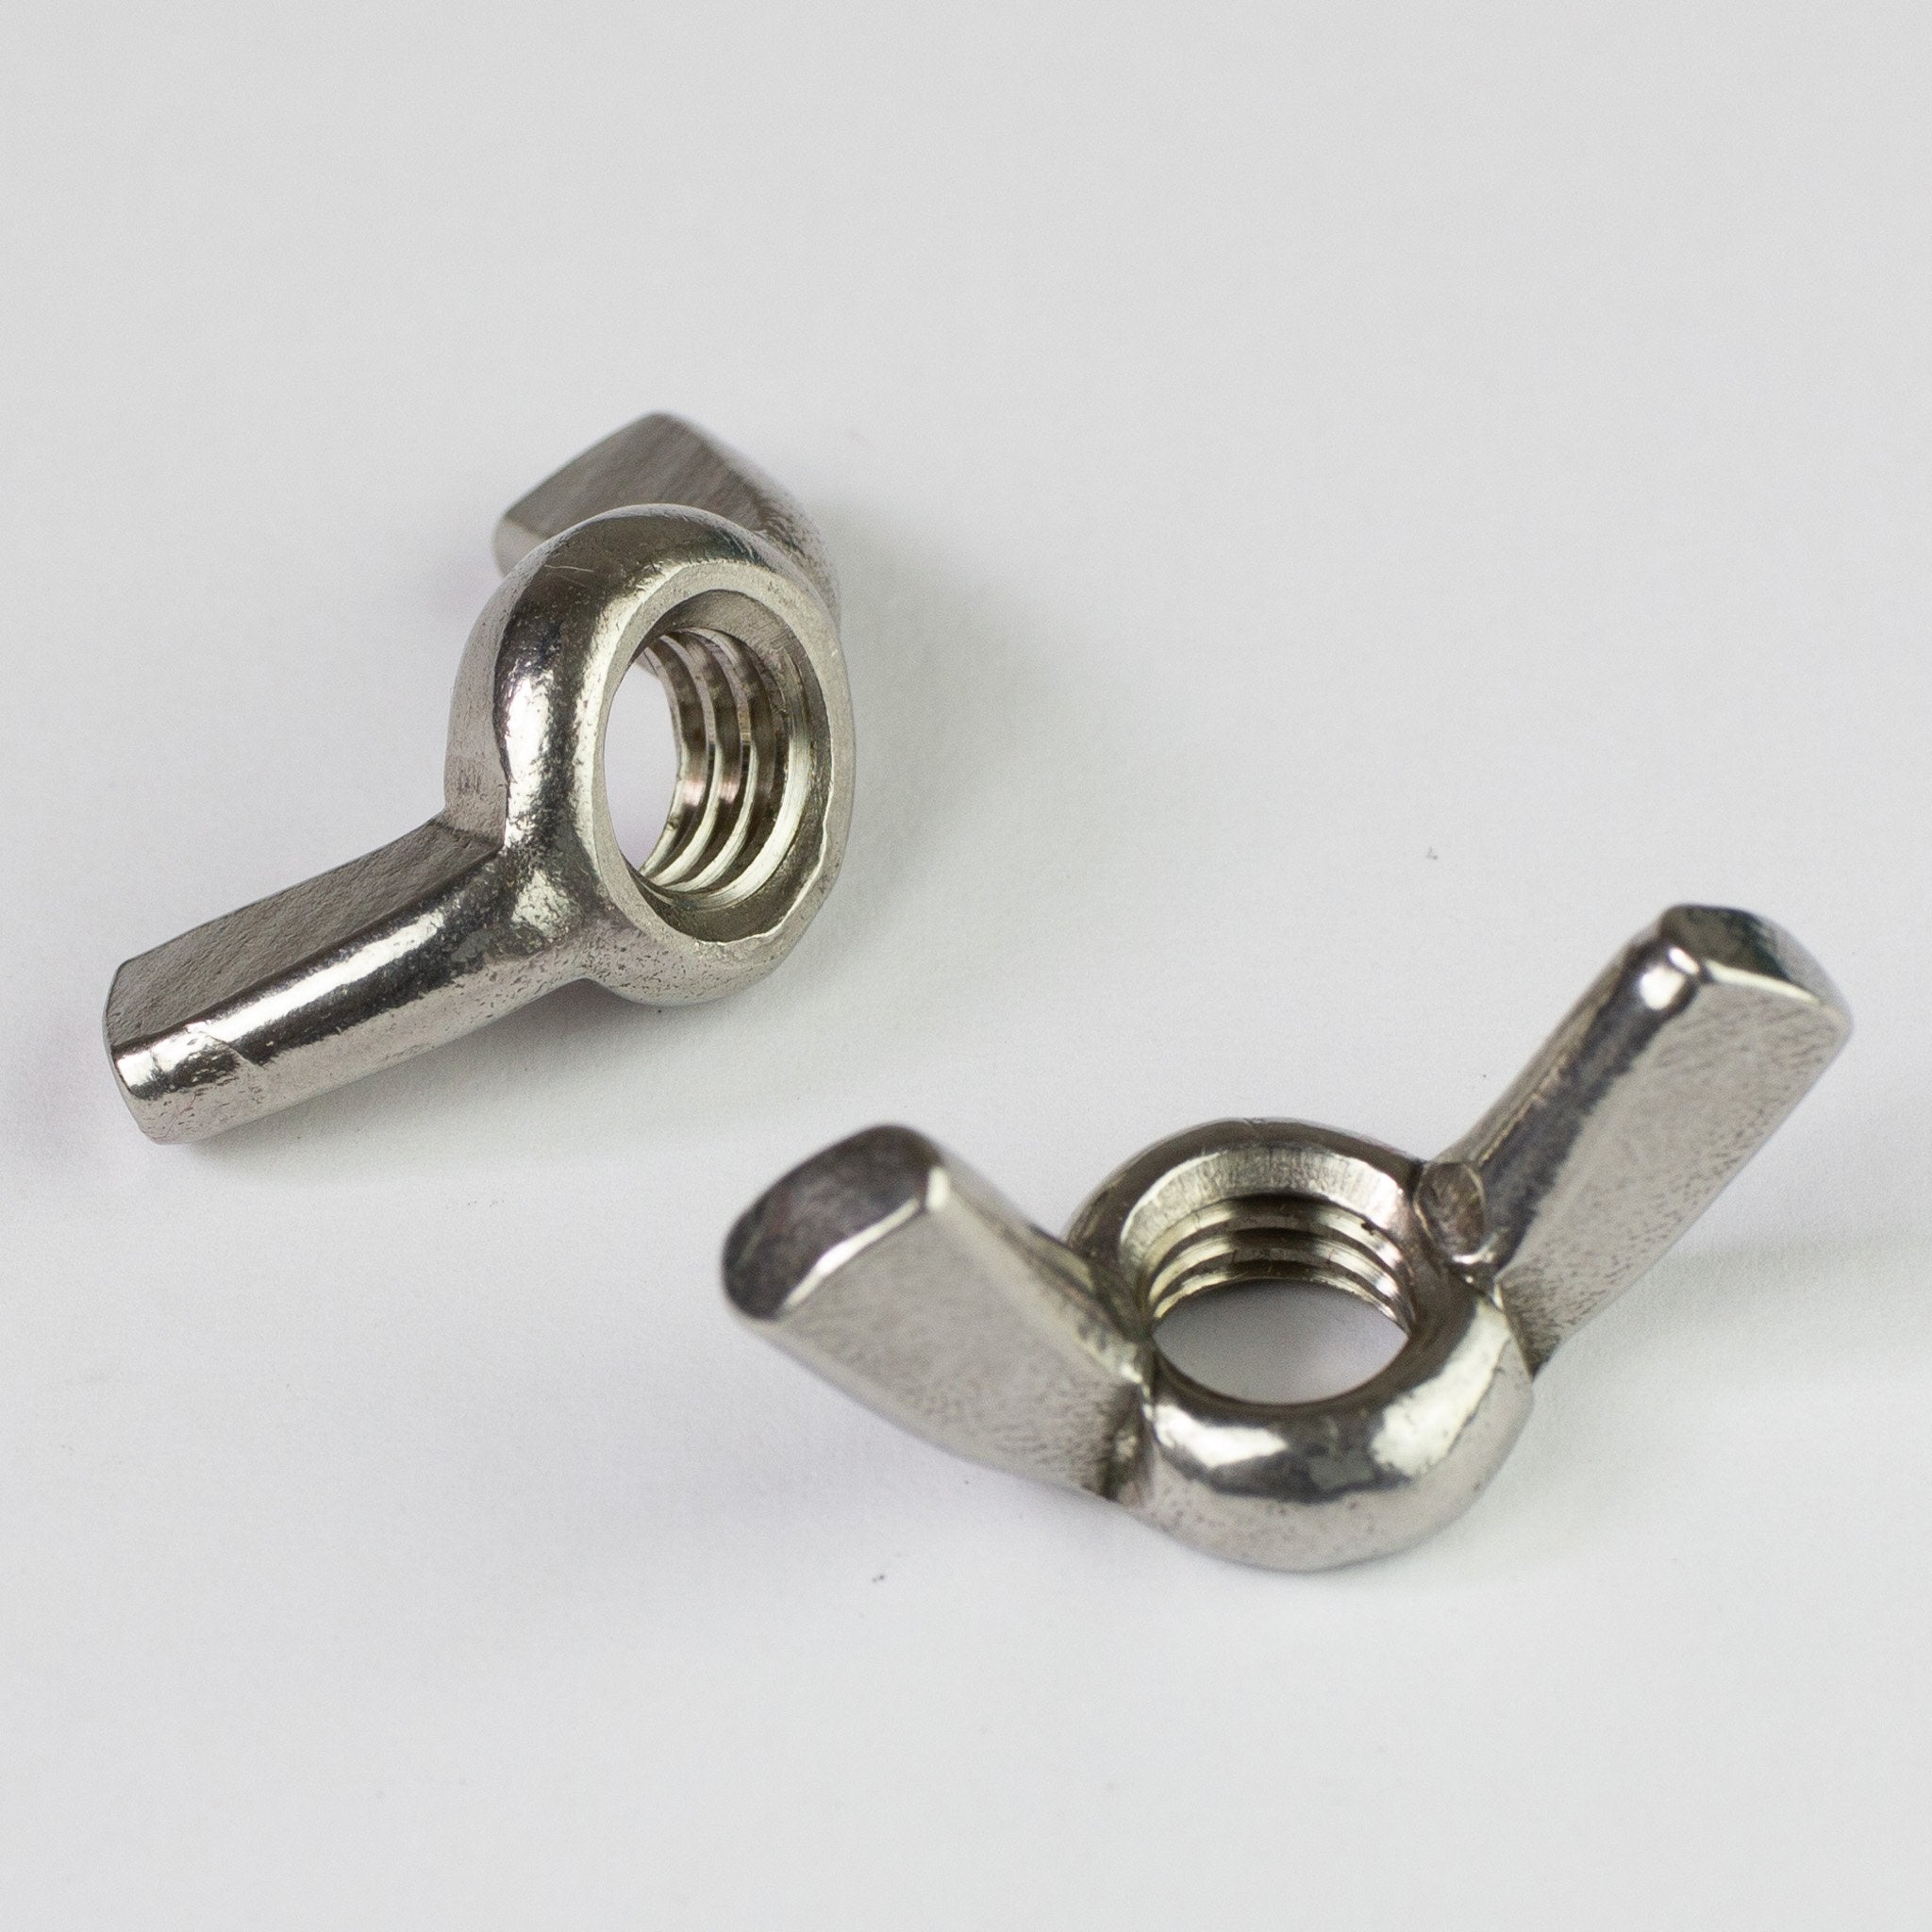 Stainless Steel Wing Nut - Arthur Beale